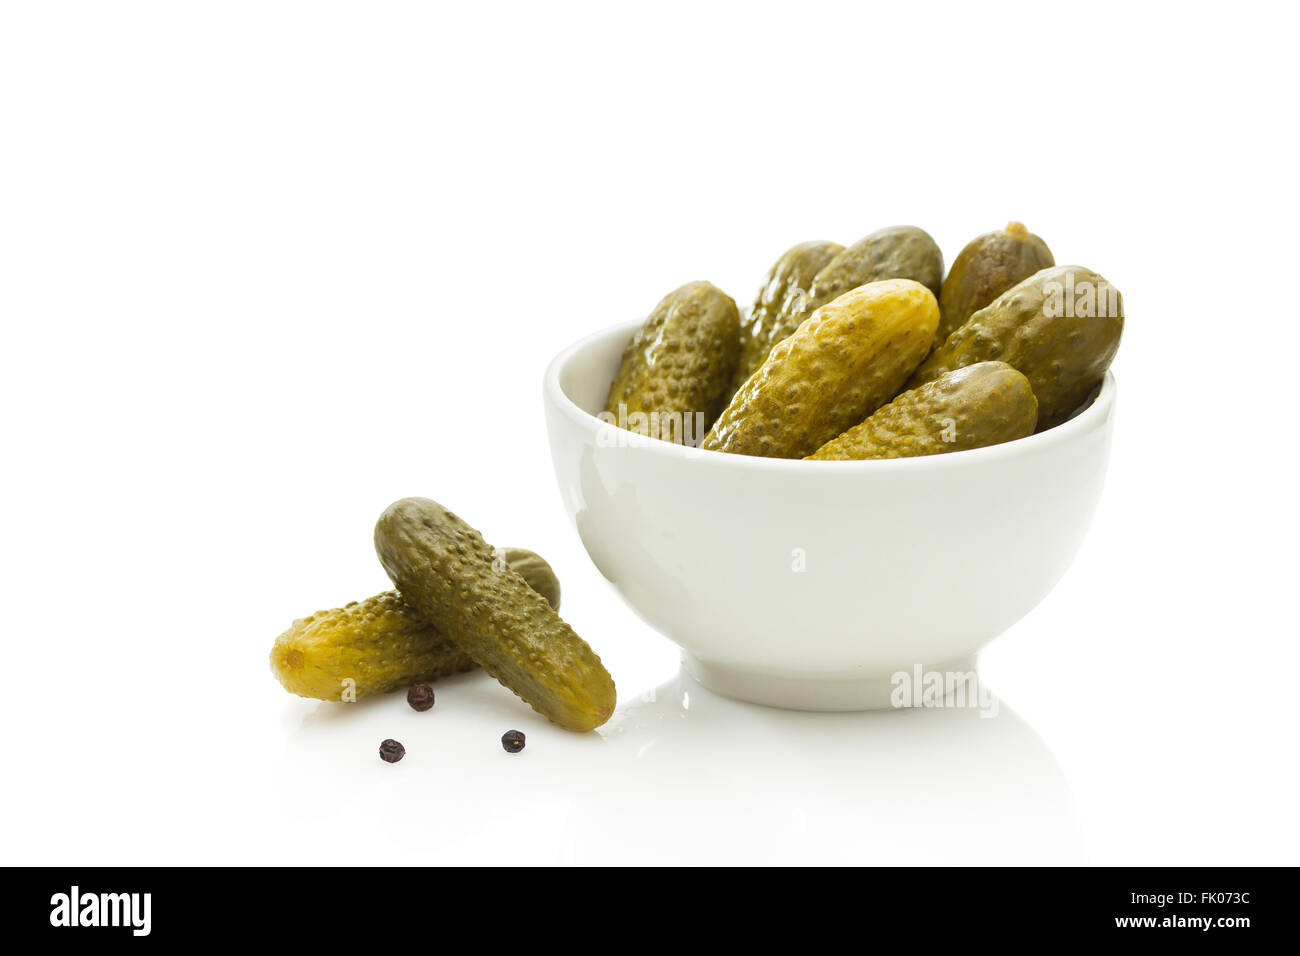 Pickled green gherkins on white background - Stock Image